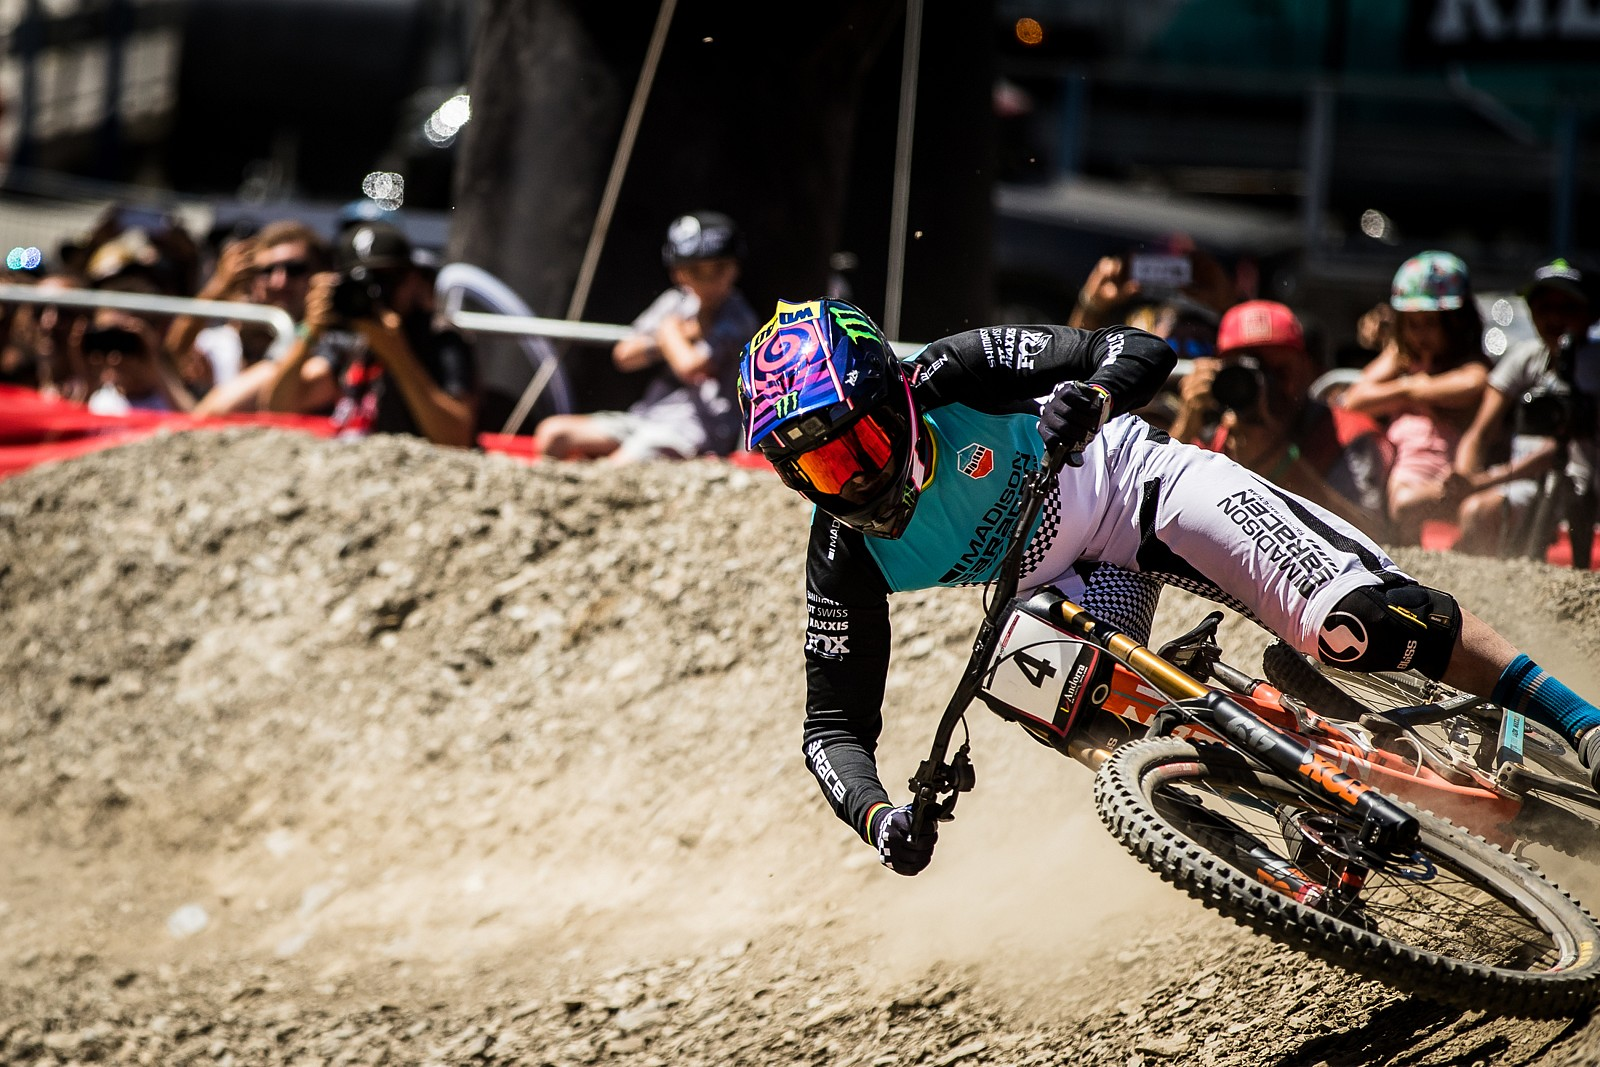 Danny Hart, Andorra World Cup DH Race Run to 5th Place - Danny Hart 2019 World Cup Downhill Photos - Mountain Biking Pictures - Vital MTB